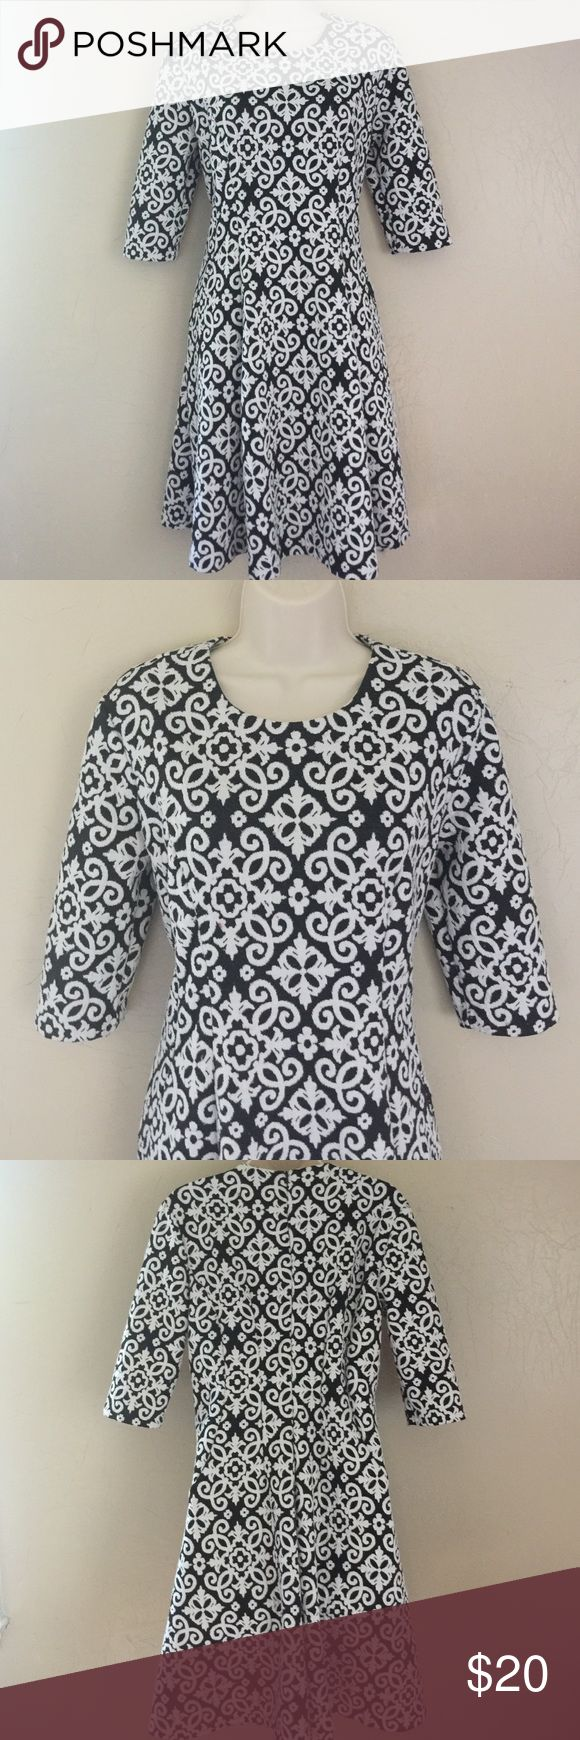 Fit and Flare Cato Dress Beautifully chic dress by Cato. Black and white and is super flattering. 97% Polyester and 3% Spandex. Has a zip down the back. Wore it with the red coat I have listed and was perfect! Amazing with tights and heels or leggings and boots! 💕 Cato Dresses